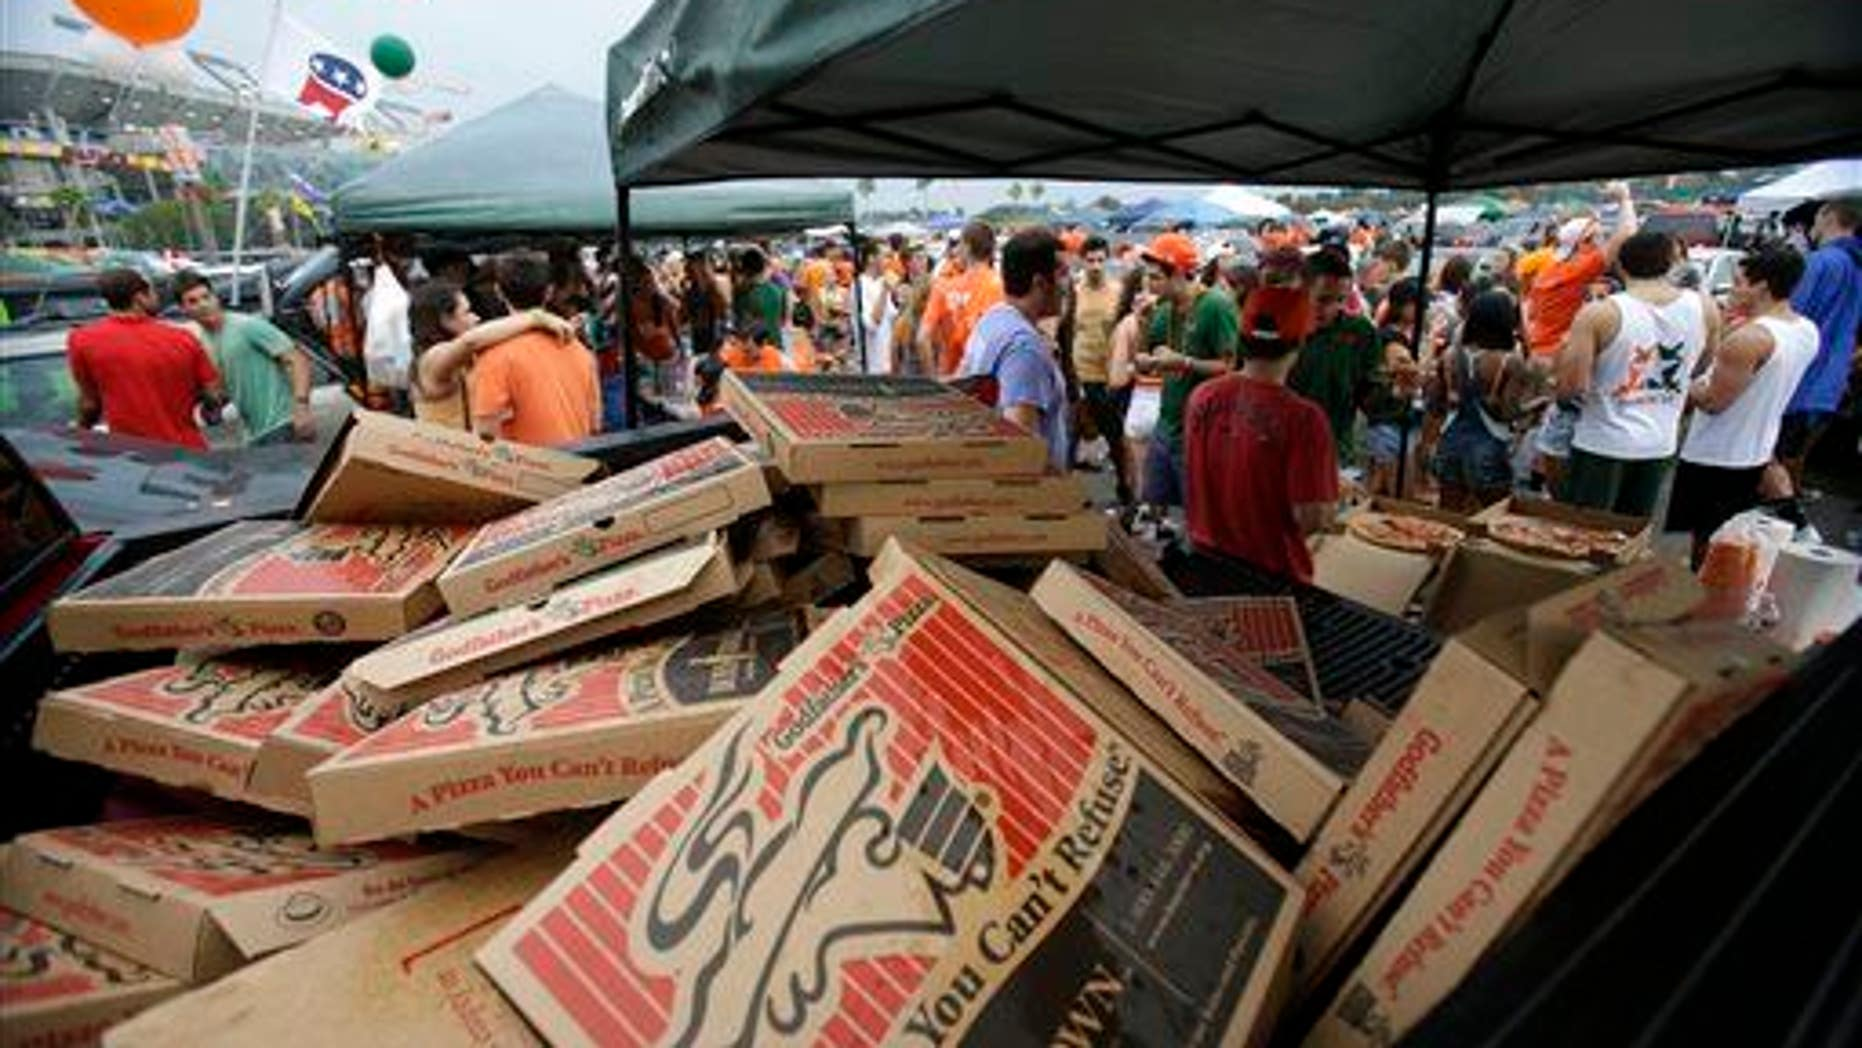 PFAS help pizza boxes avoid getting soaked by grease.